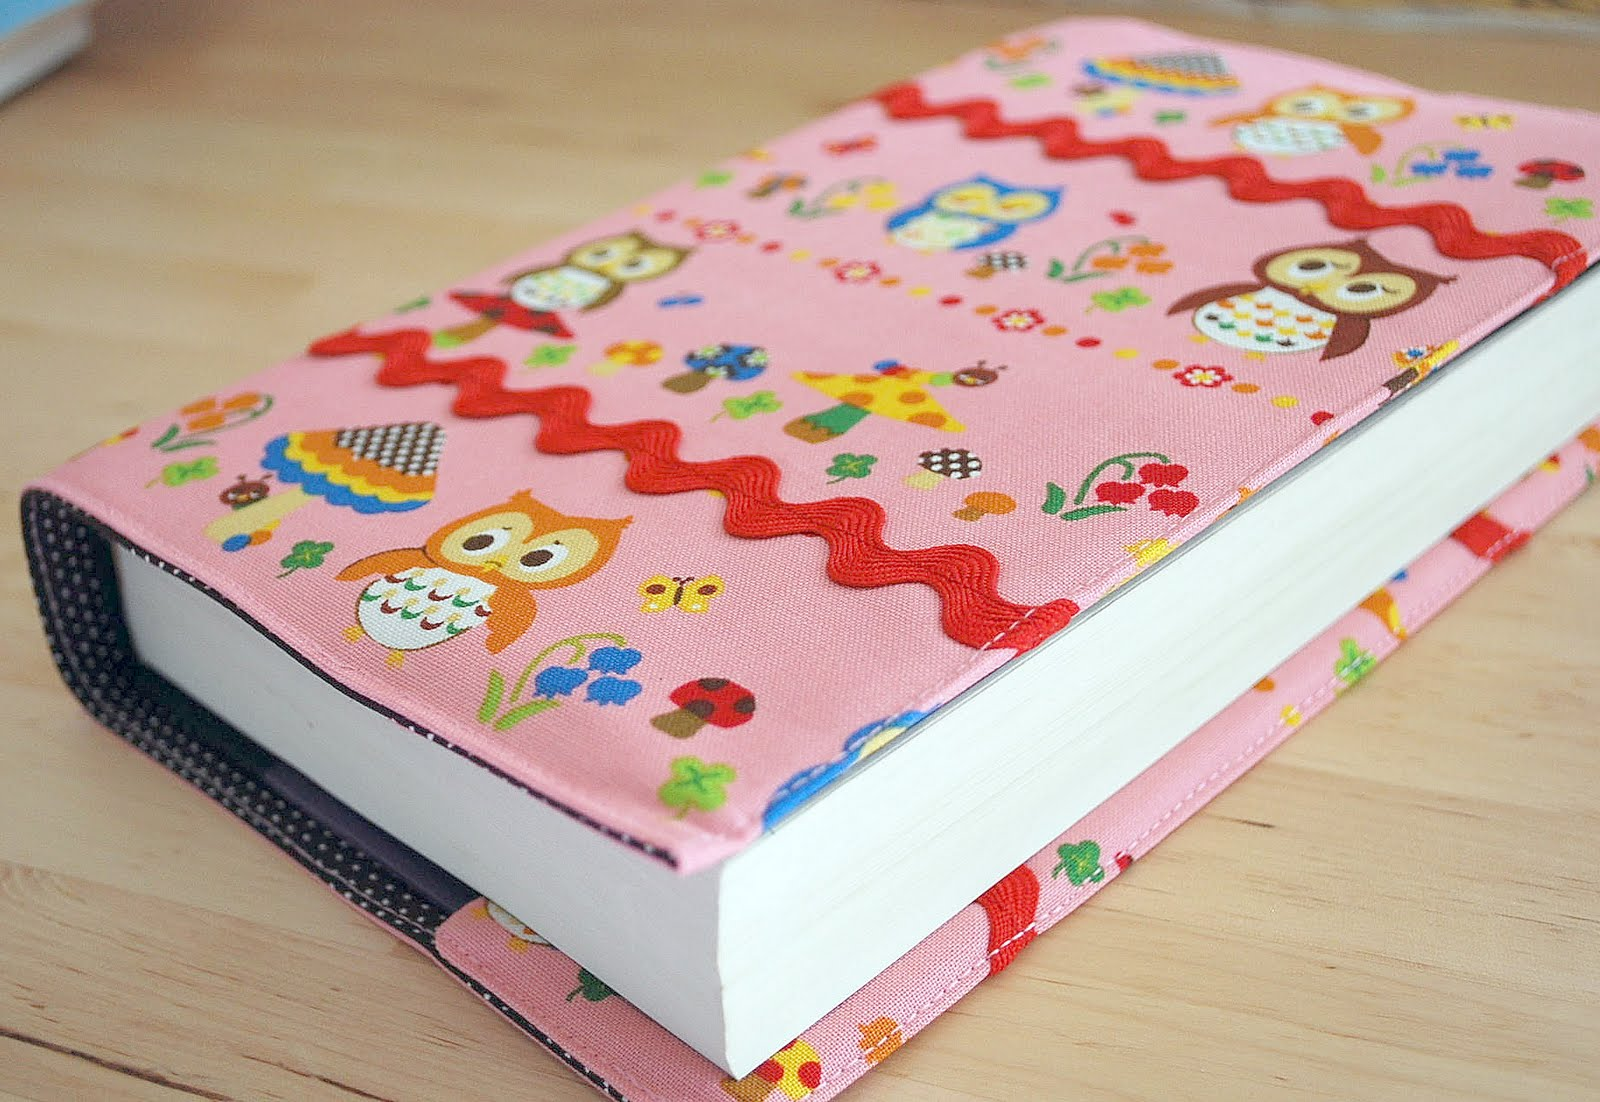 Photo Book Cover Material : All awesome links sew a fabric book cover